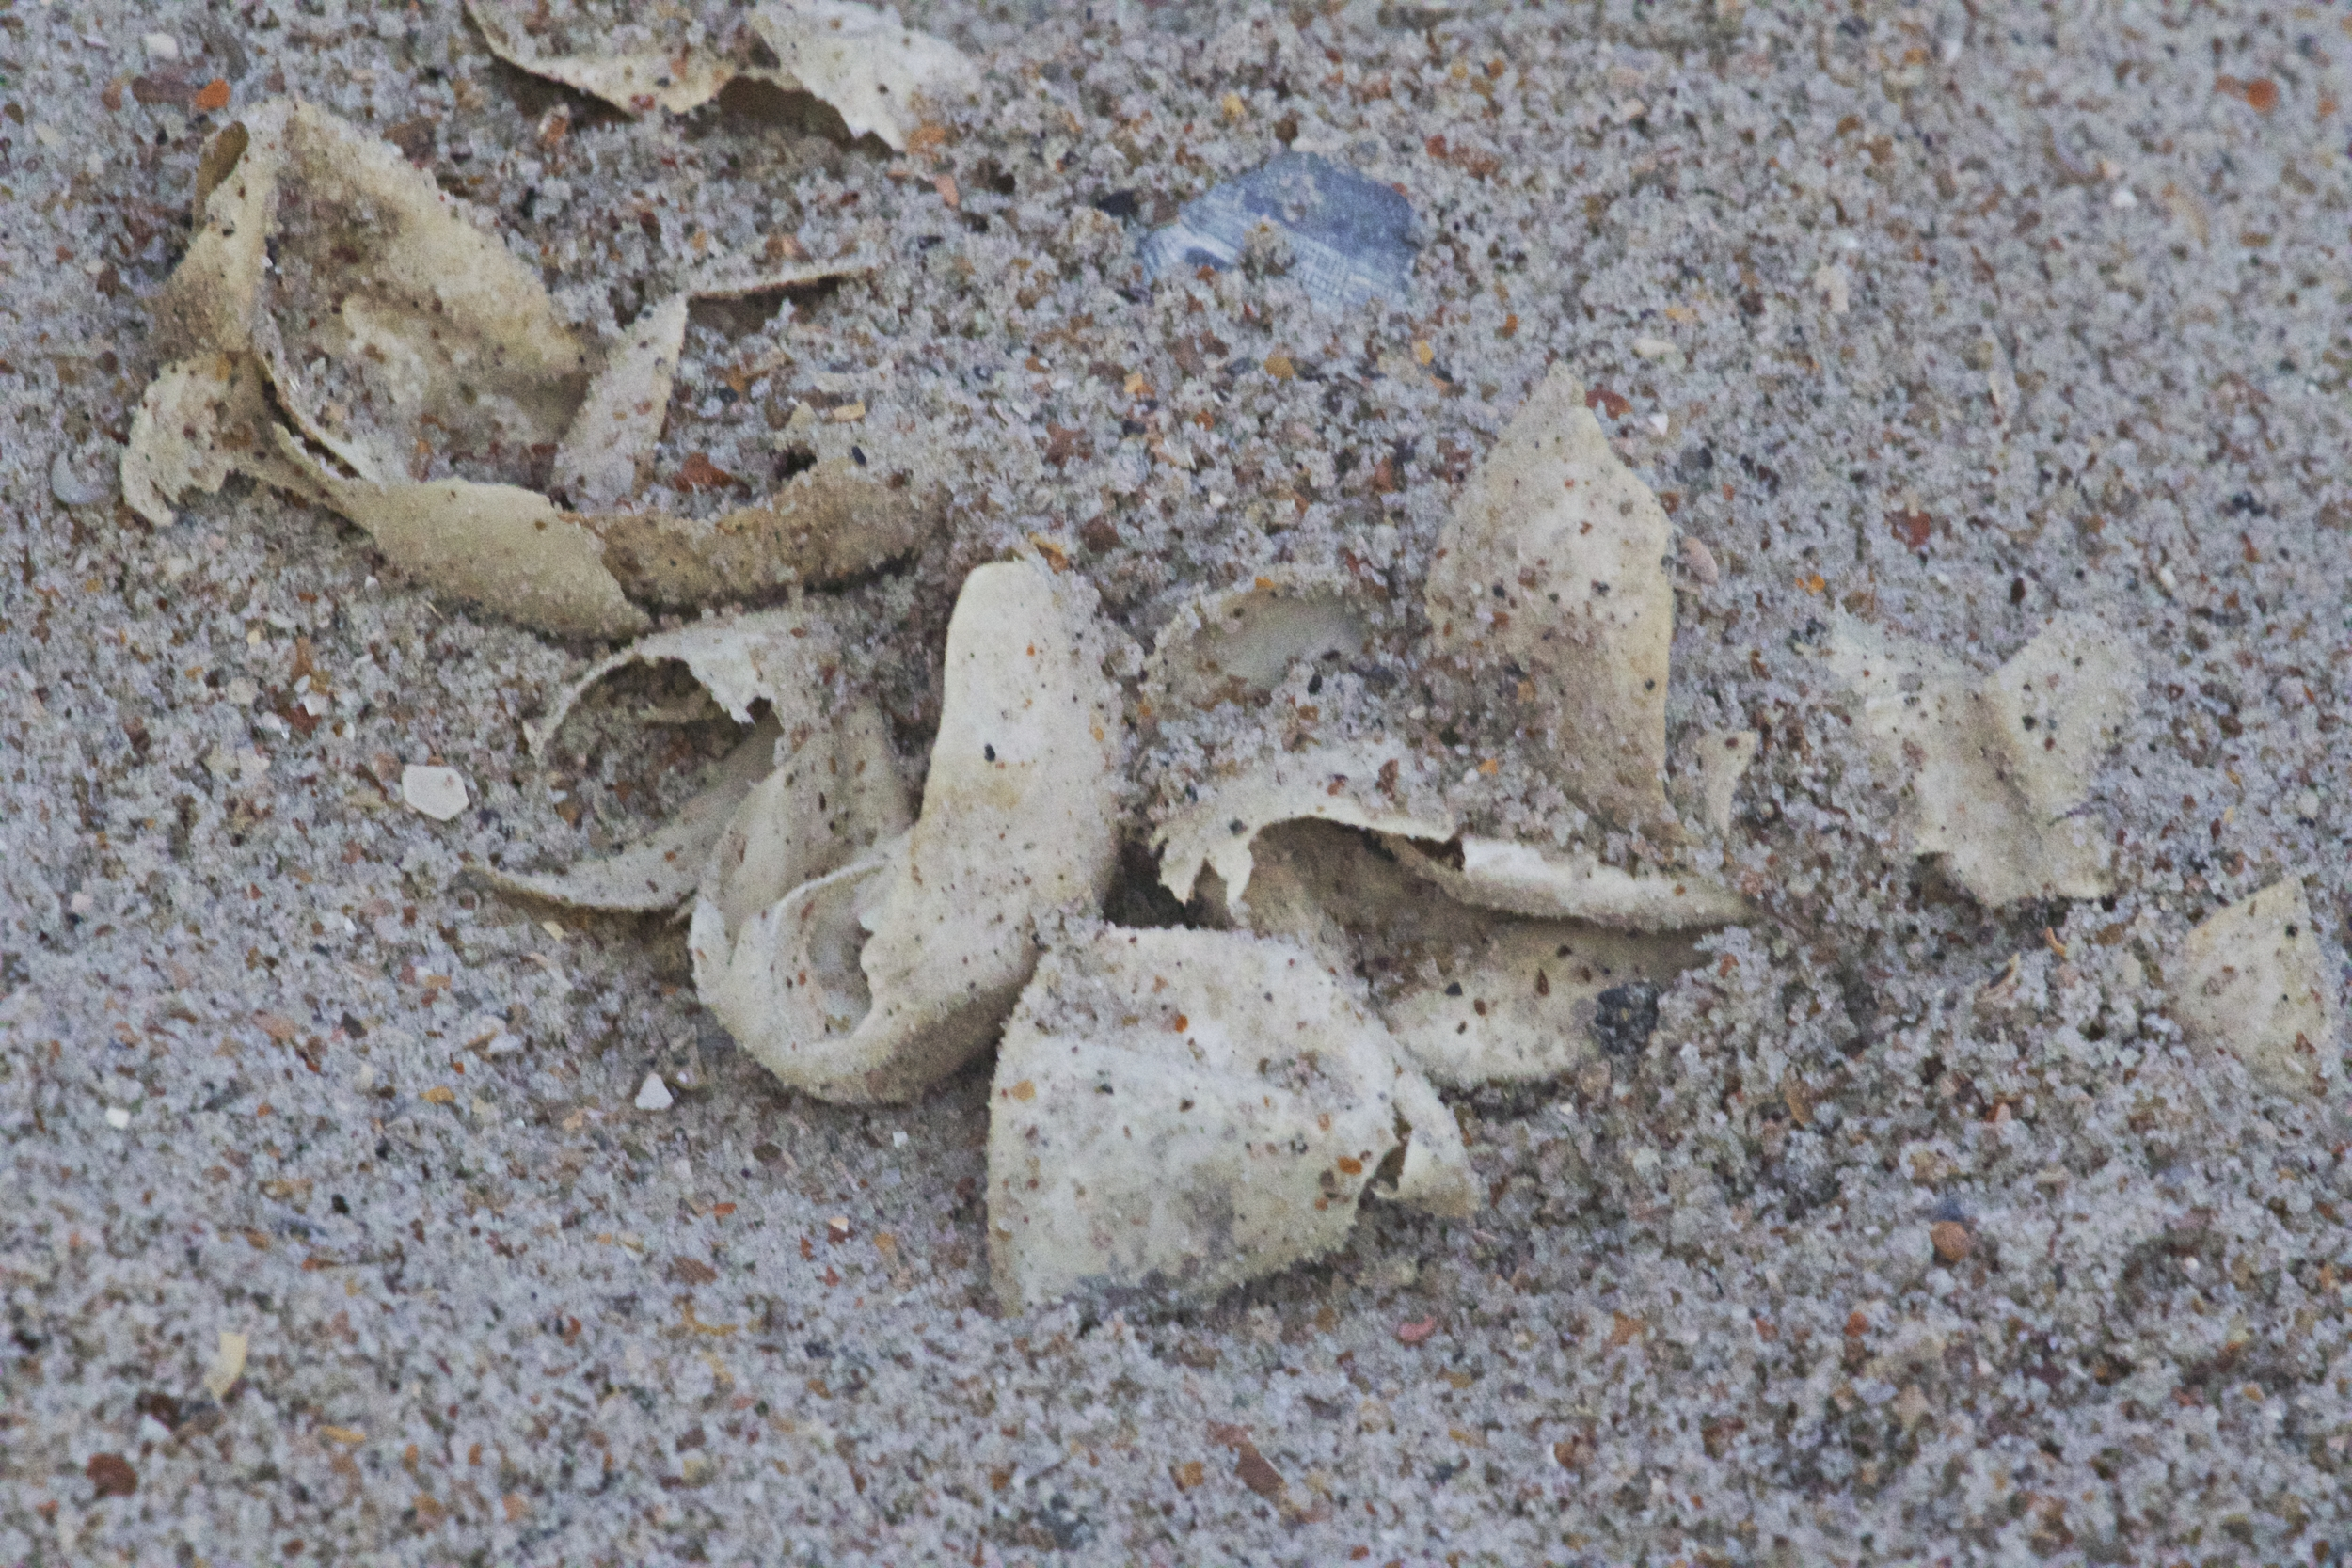 Empty Sibling shells from the recent successful Green Sea Turtle nest hatch at Amelia Island